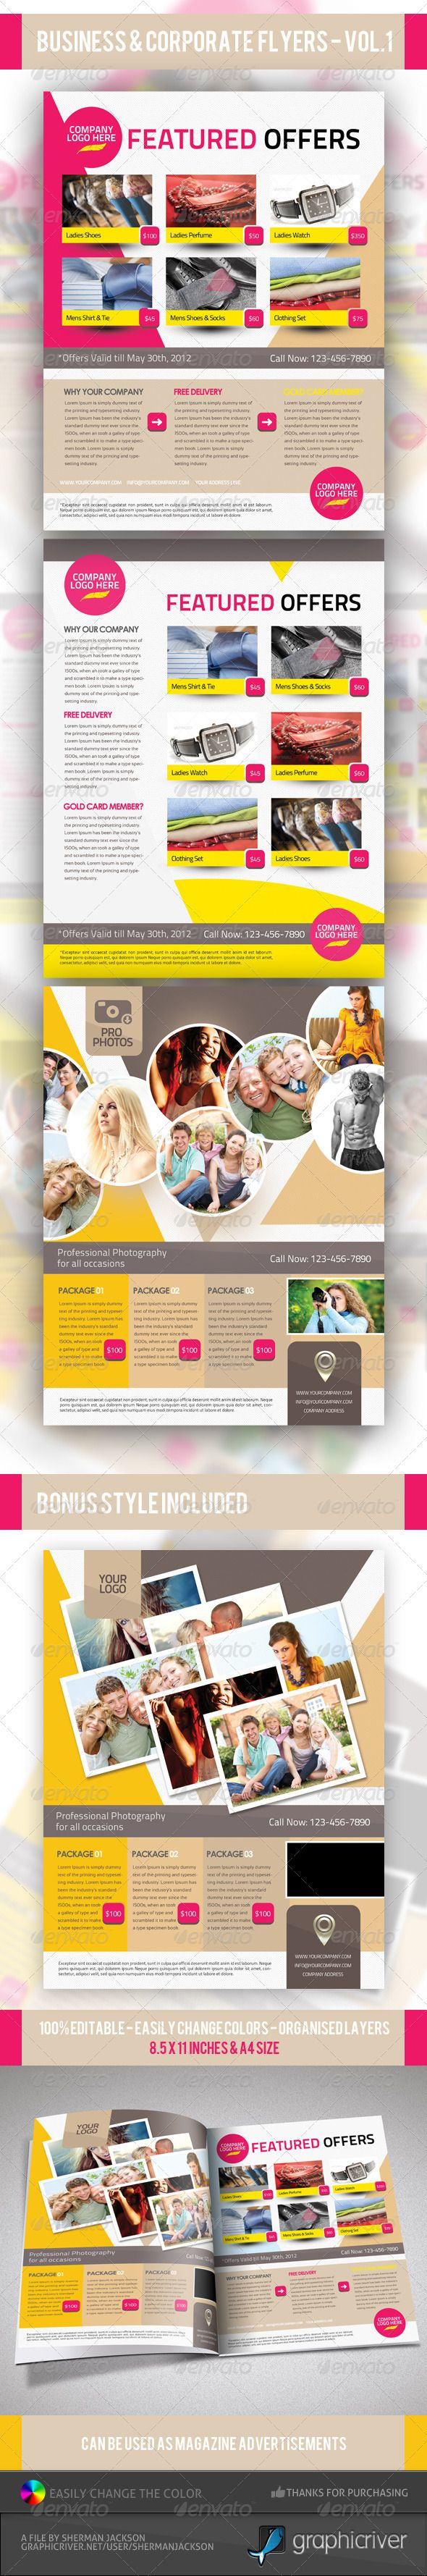 Business  Corporate Product Flyer Psd Templates  Psd Templates